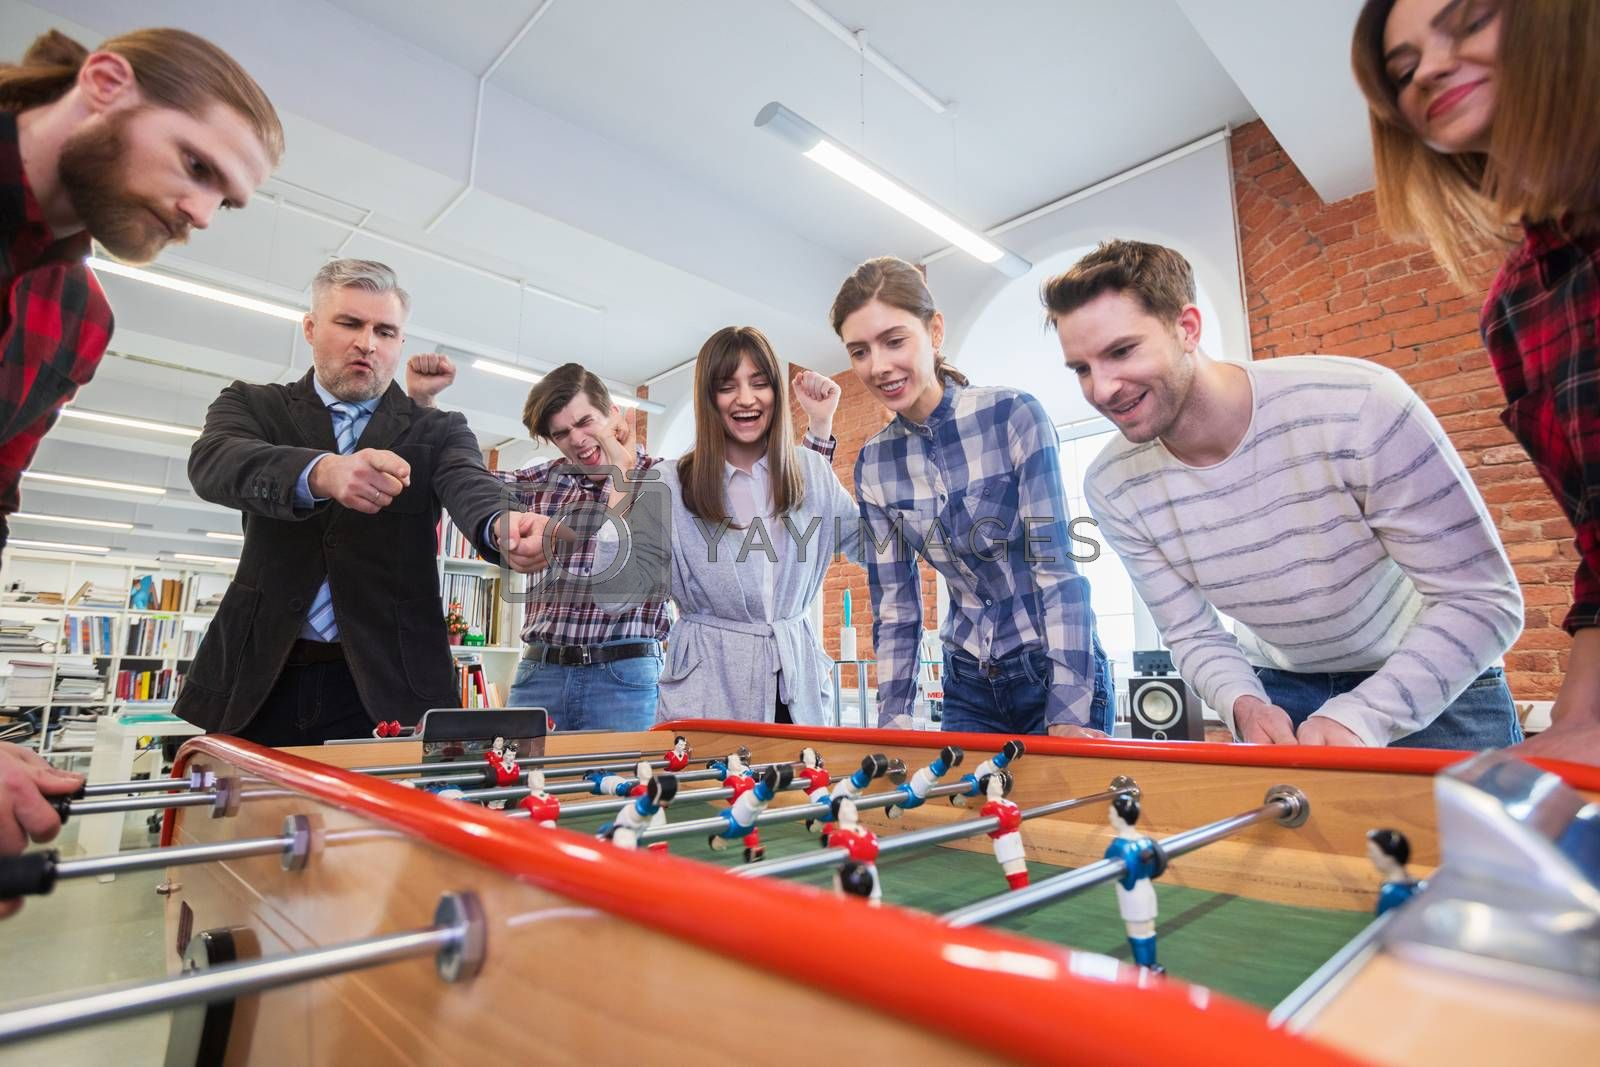 Business people having great time together, colleagues playing table football in modern office